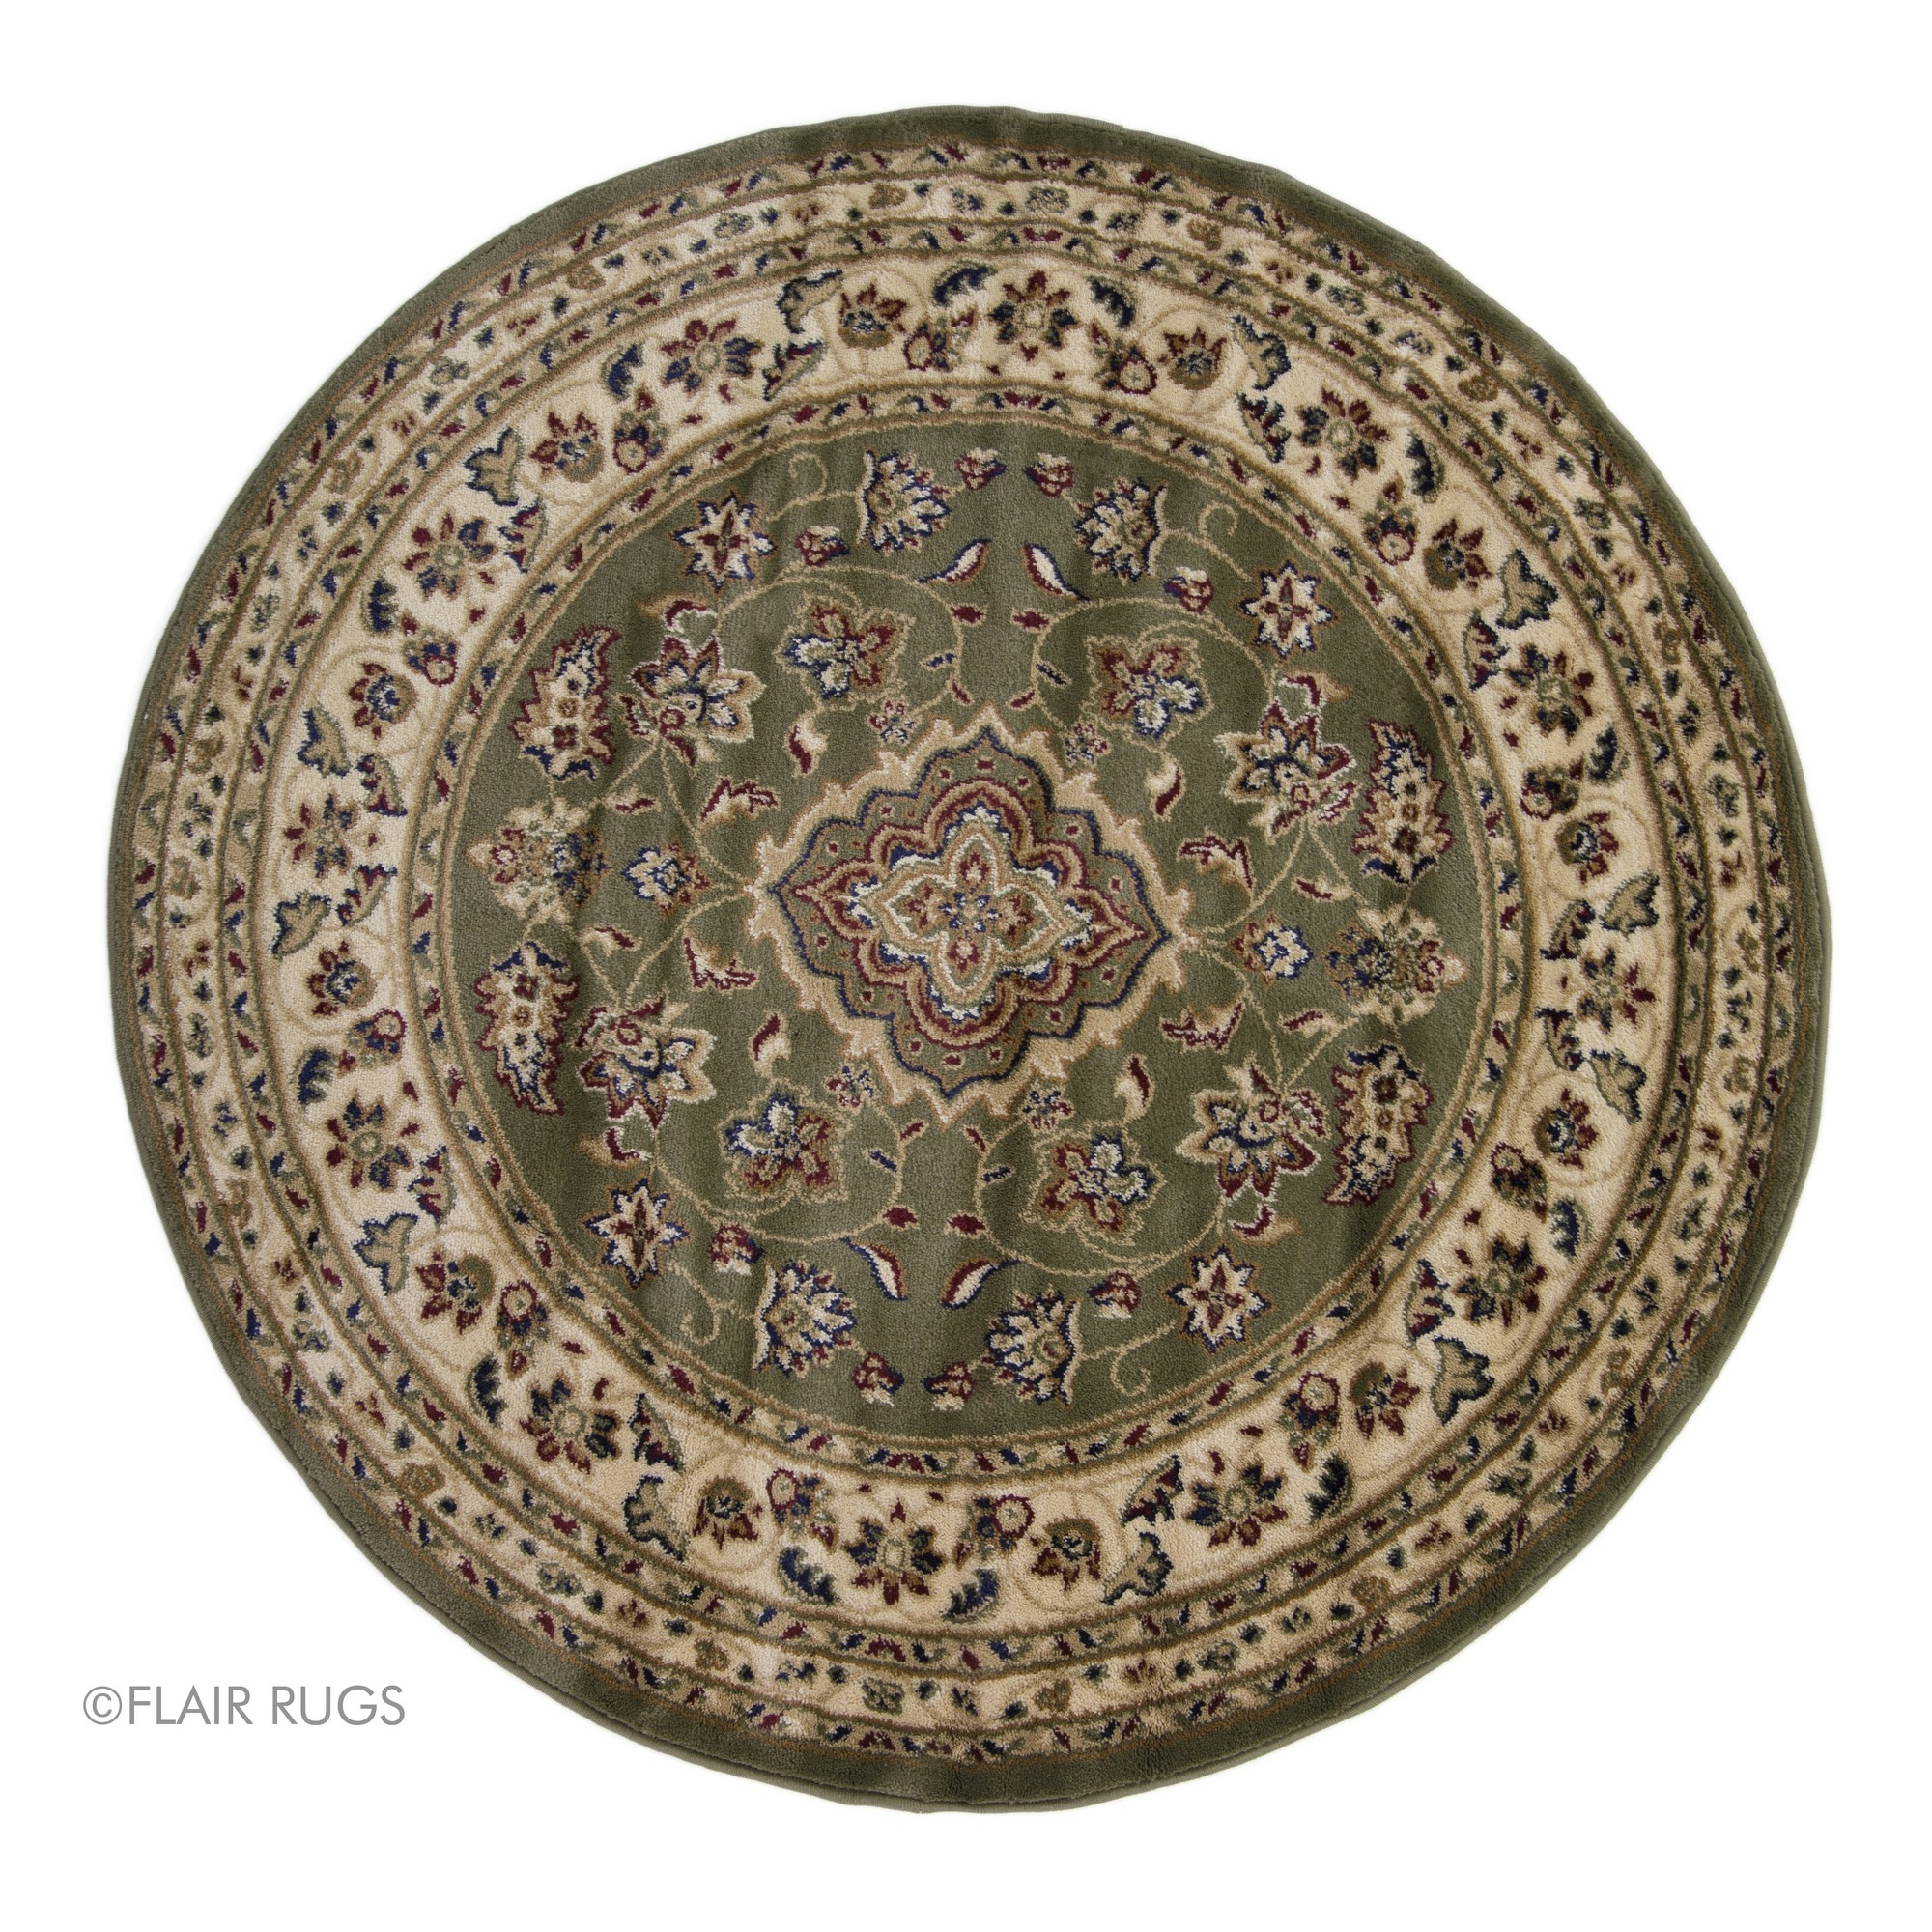 Vintage Circular Rug: Flair Rugs Sincerity Sherbourne Antique Design Round Floor